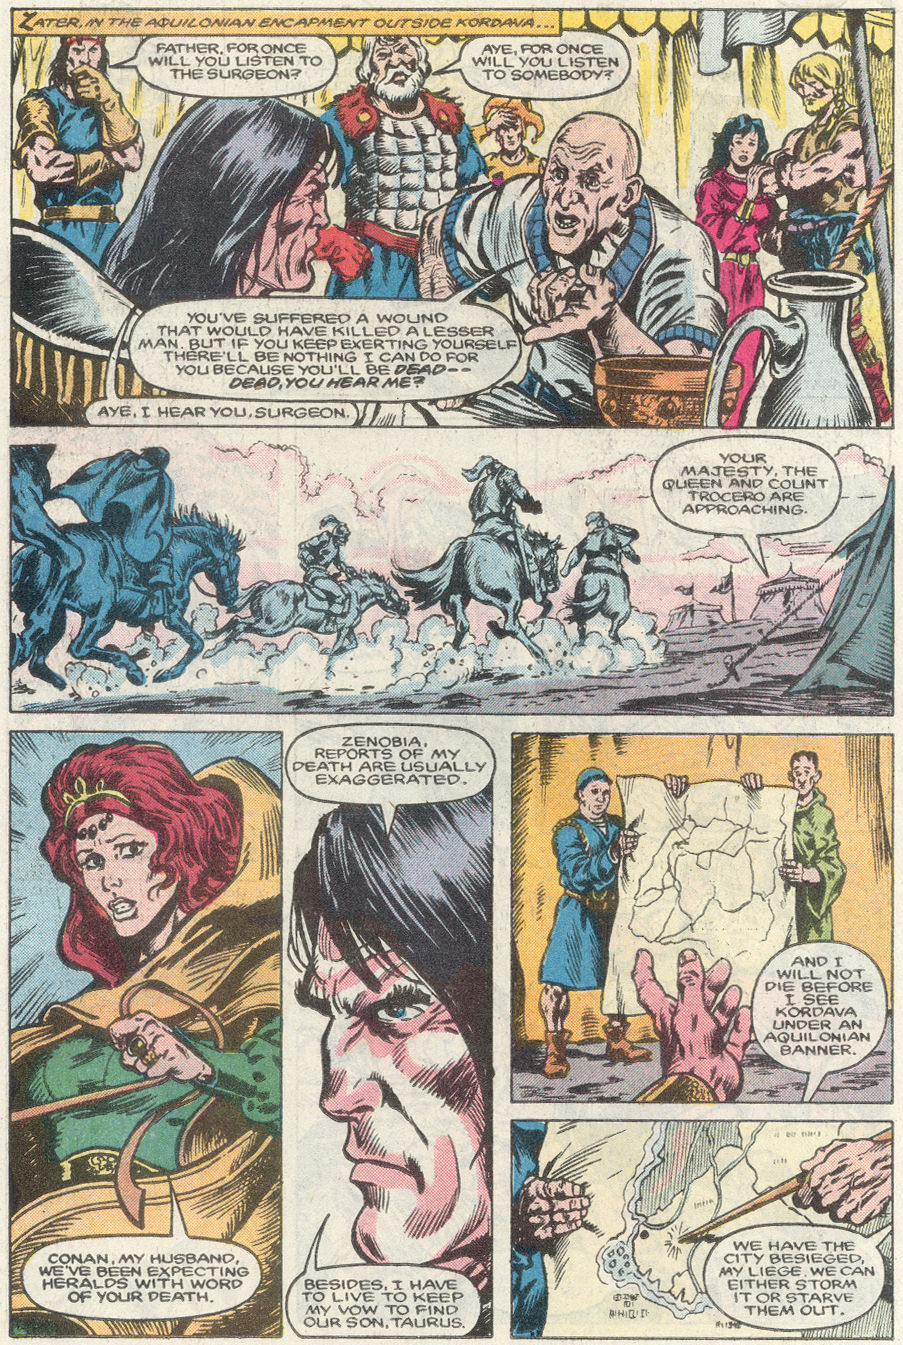 Conan the King Issue 40 | Viewcomic reading comics online